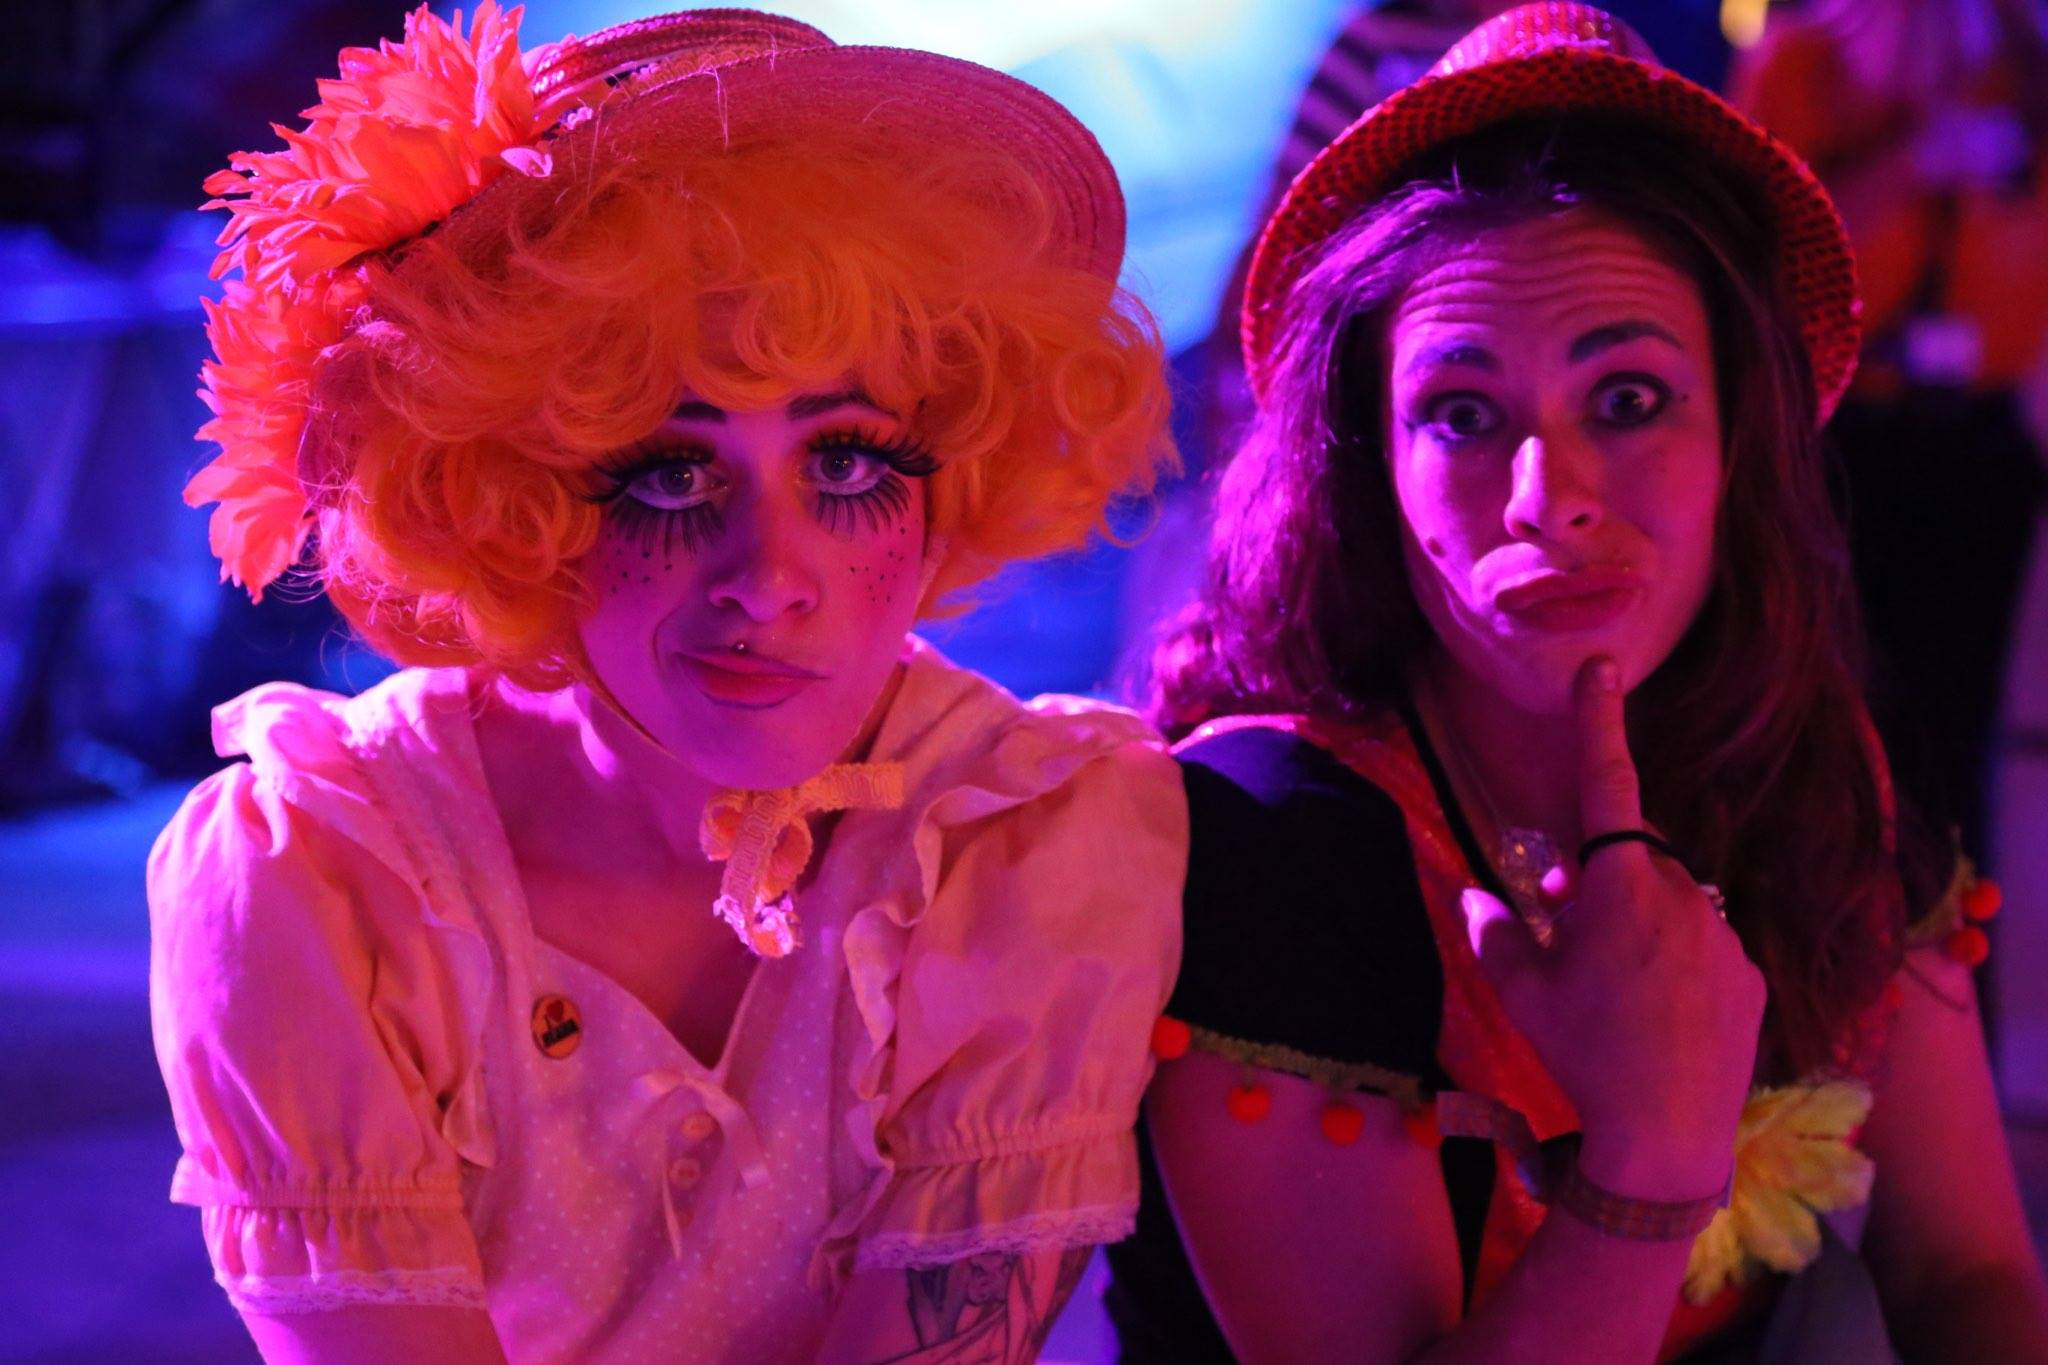 Midway ensemble players Lil Gitsy and Trixie taking a break in the high 90's nightime heat